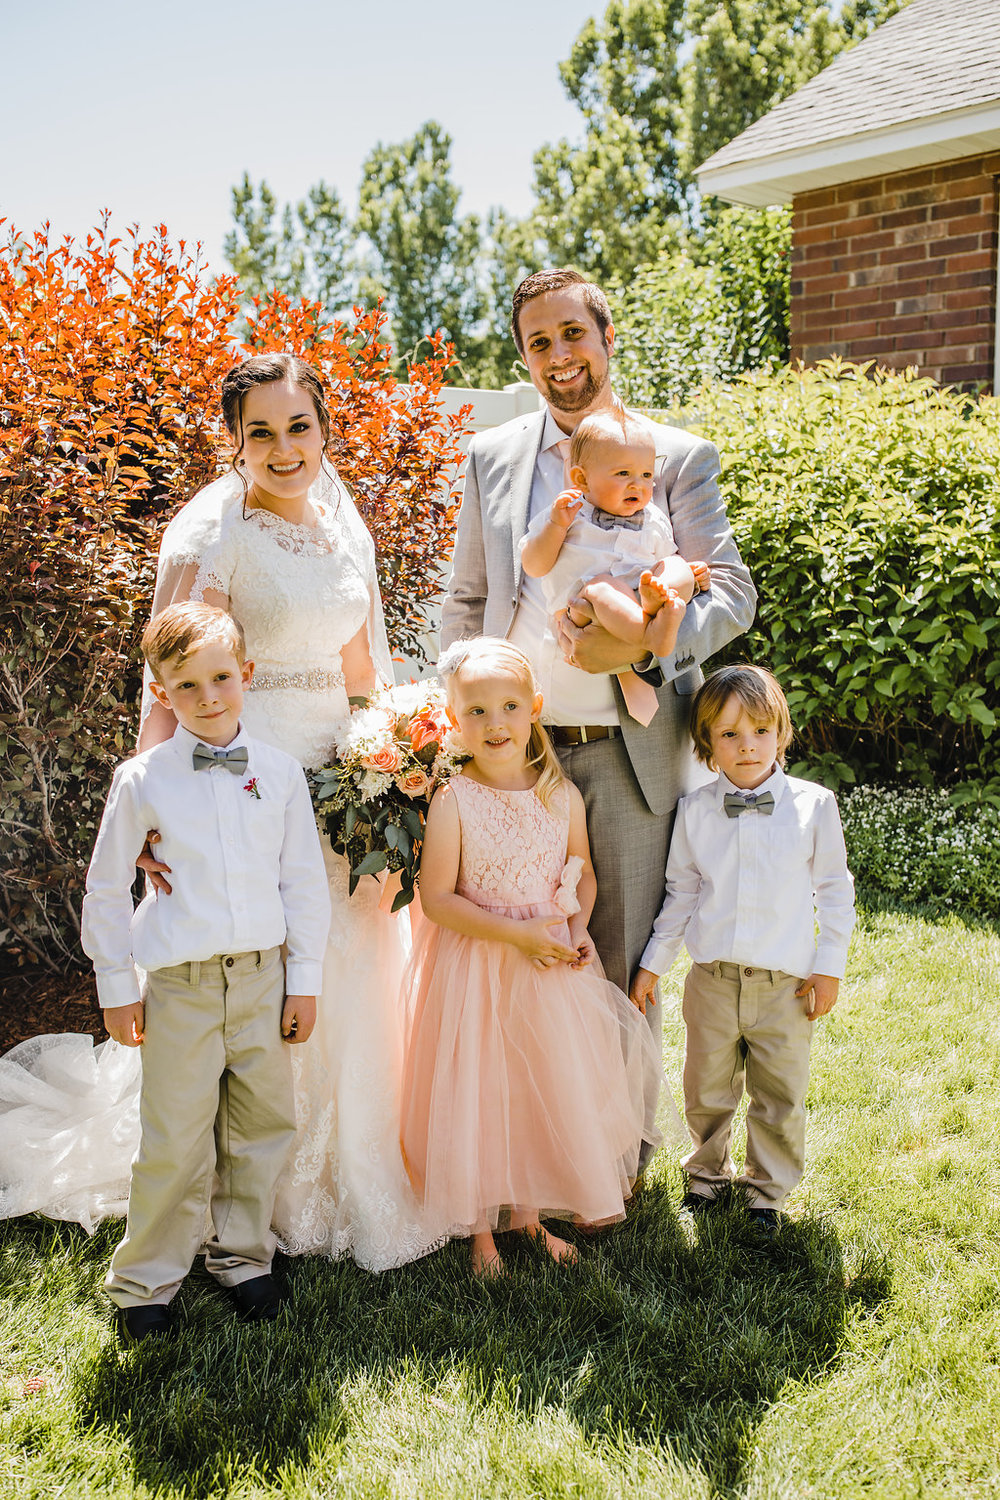 family photos on wedding day bride and groom with flower girl and ring bearer bowties utah wedding photography